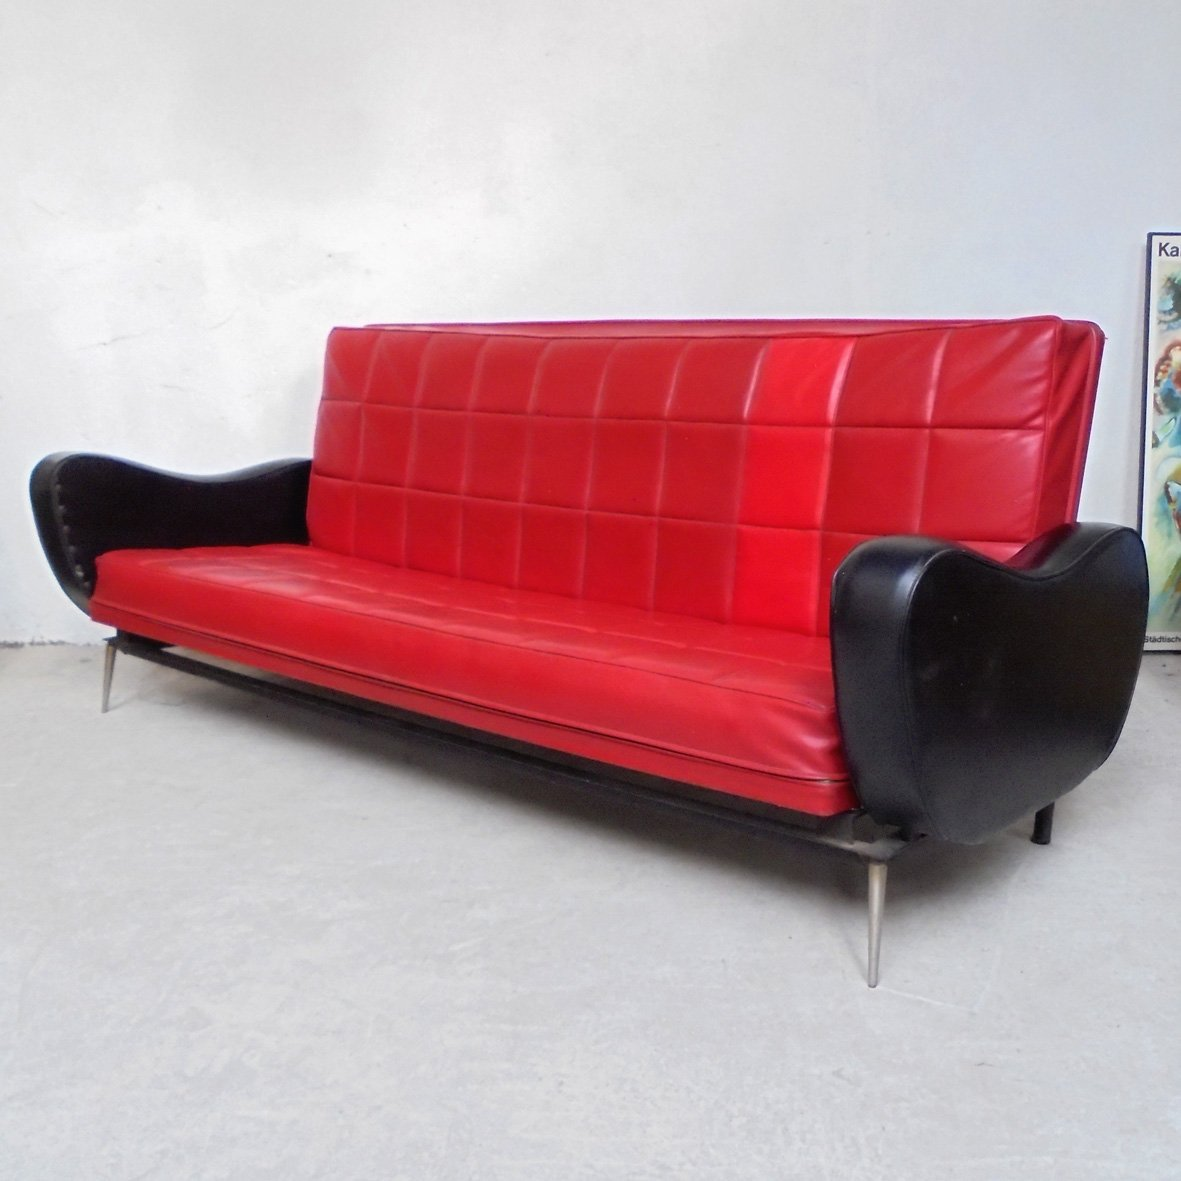 Vintage black and red skai sofa bed 1950s for sale at pamono for Sofa bed 4 6